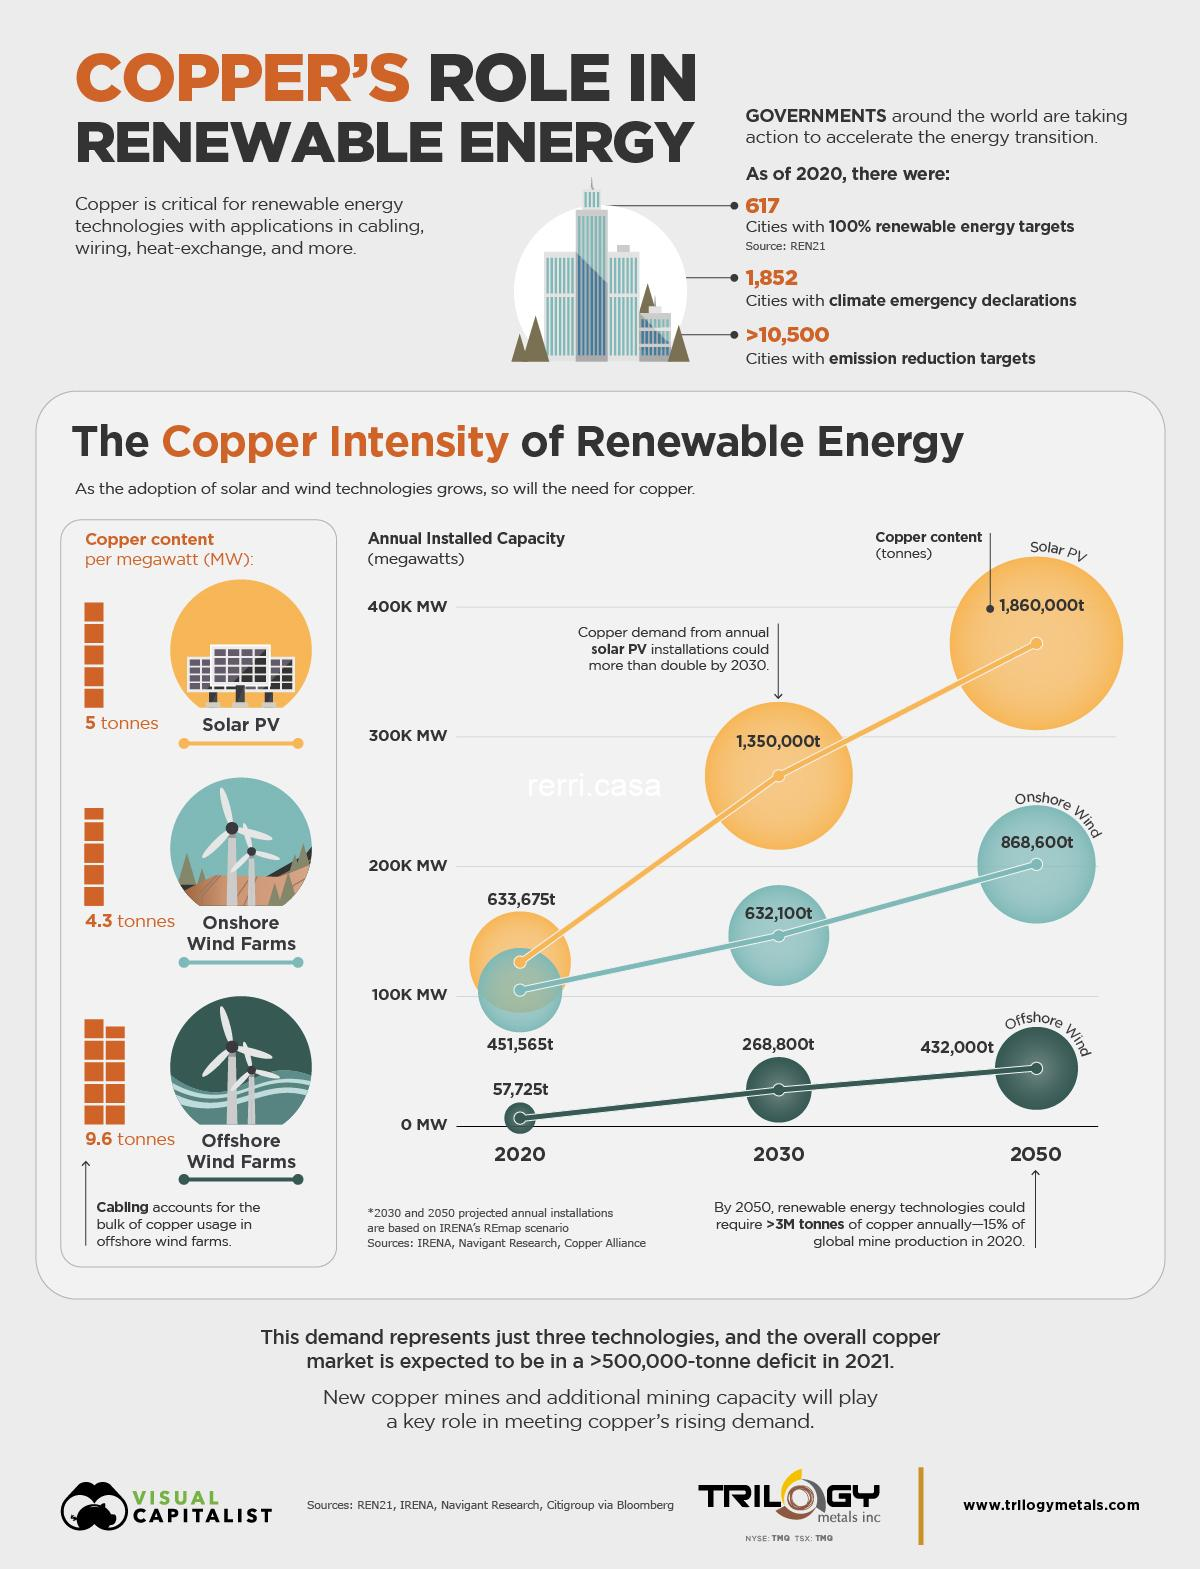 Visualizing the Copper Intensity of Renewable Energy